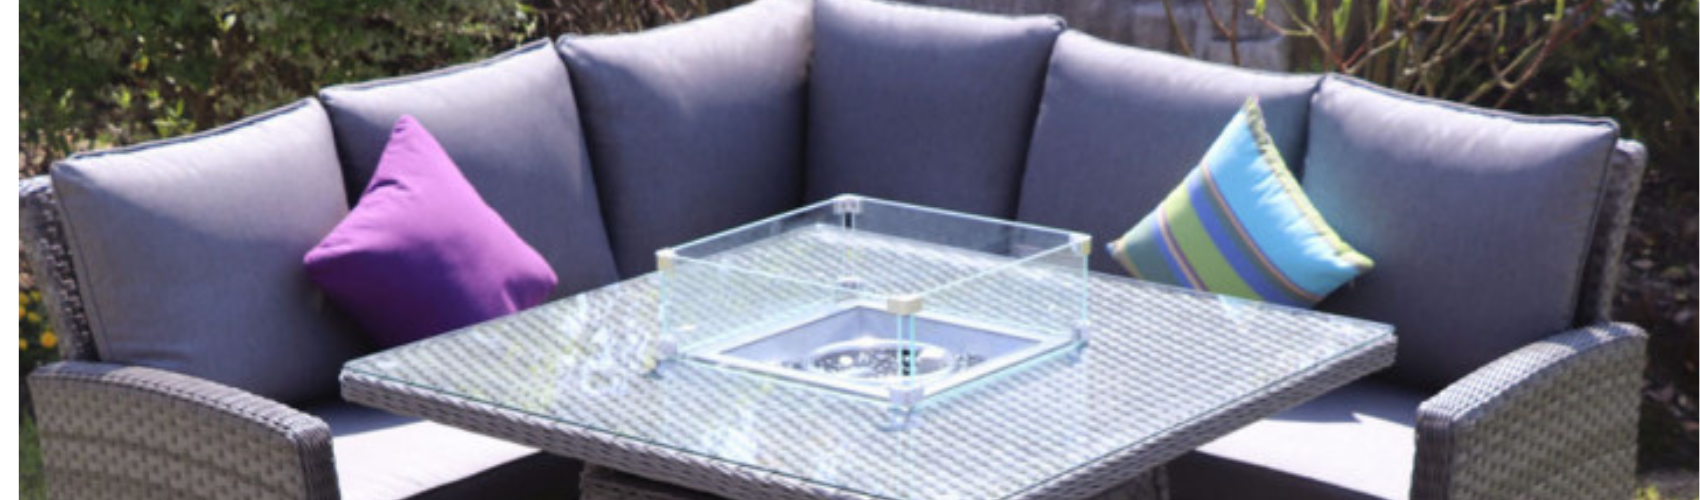 Preserving and protecting your outdoor furniture